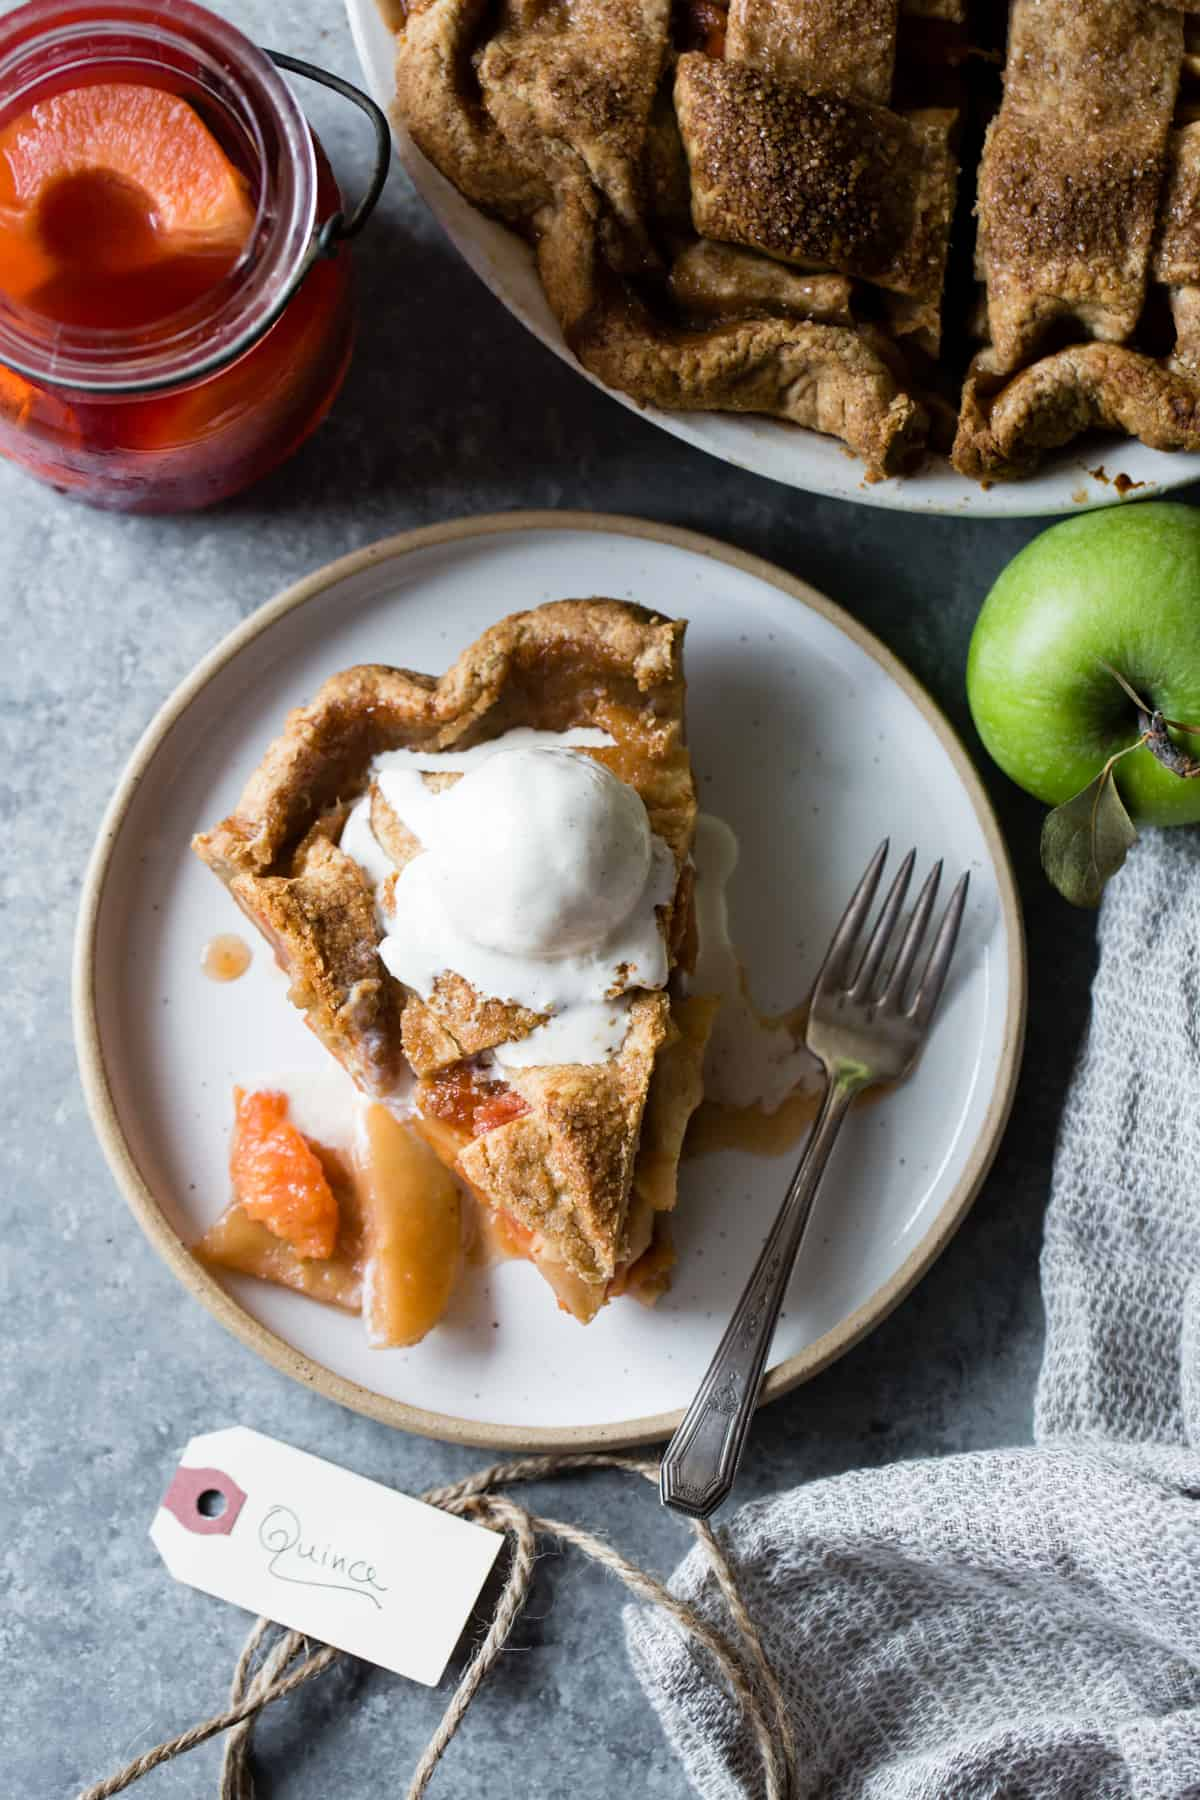 slice of delicious Gluten Free Apple Pie with Spiced Poached Quince